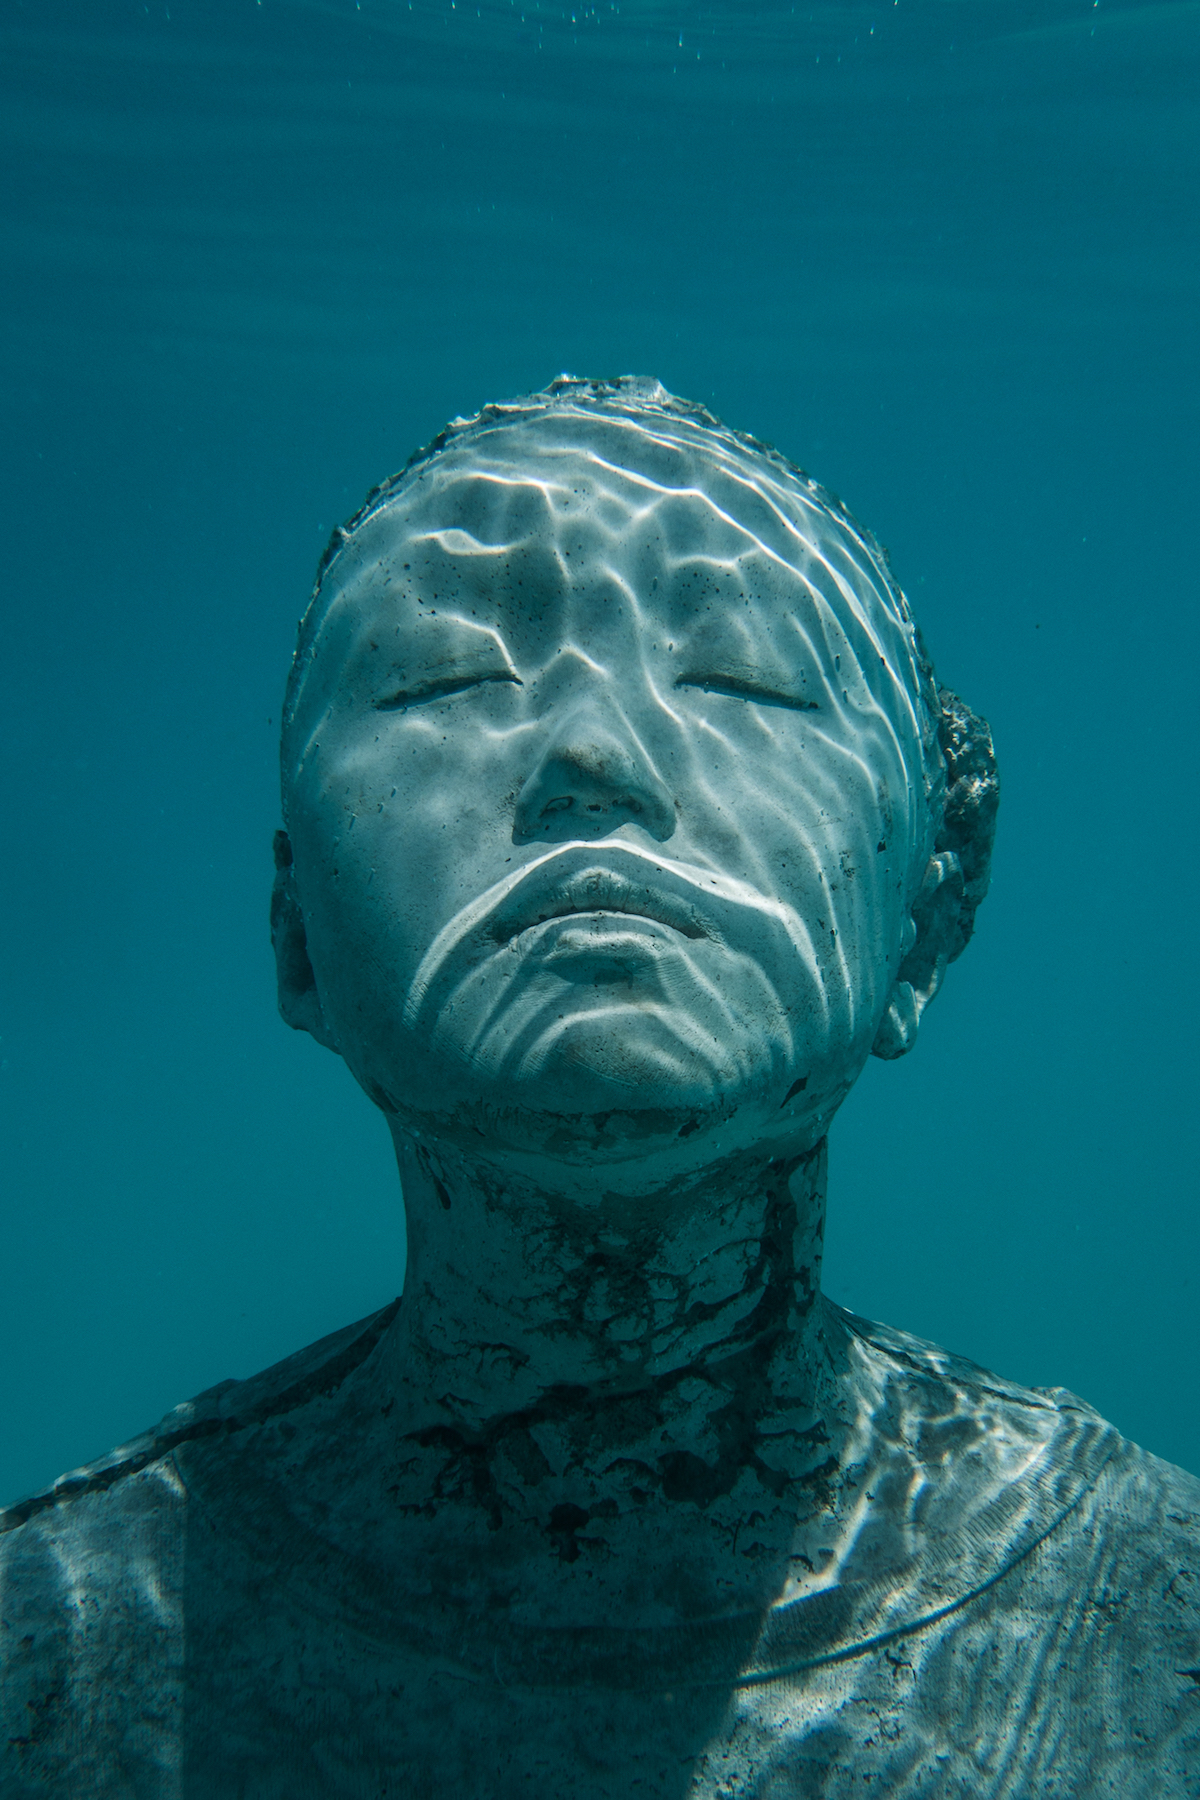 Coralarium by Jason deCaires Taylor